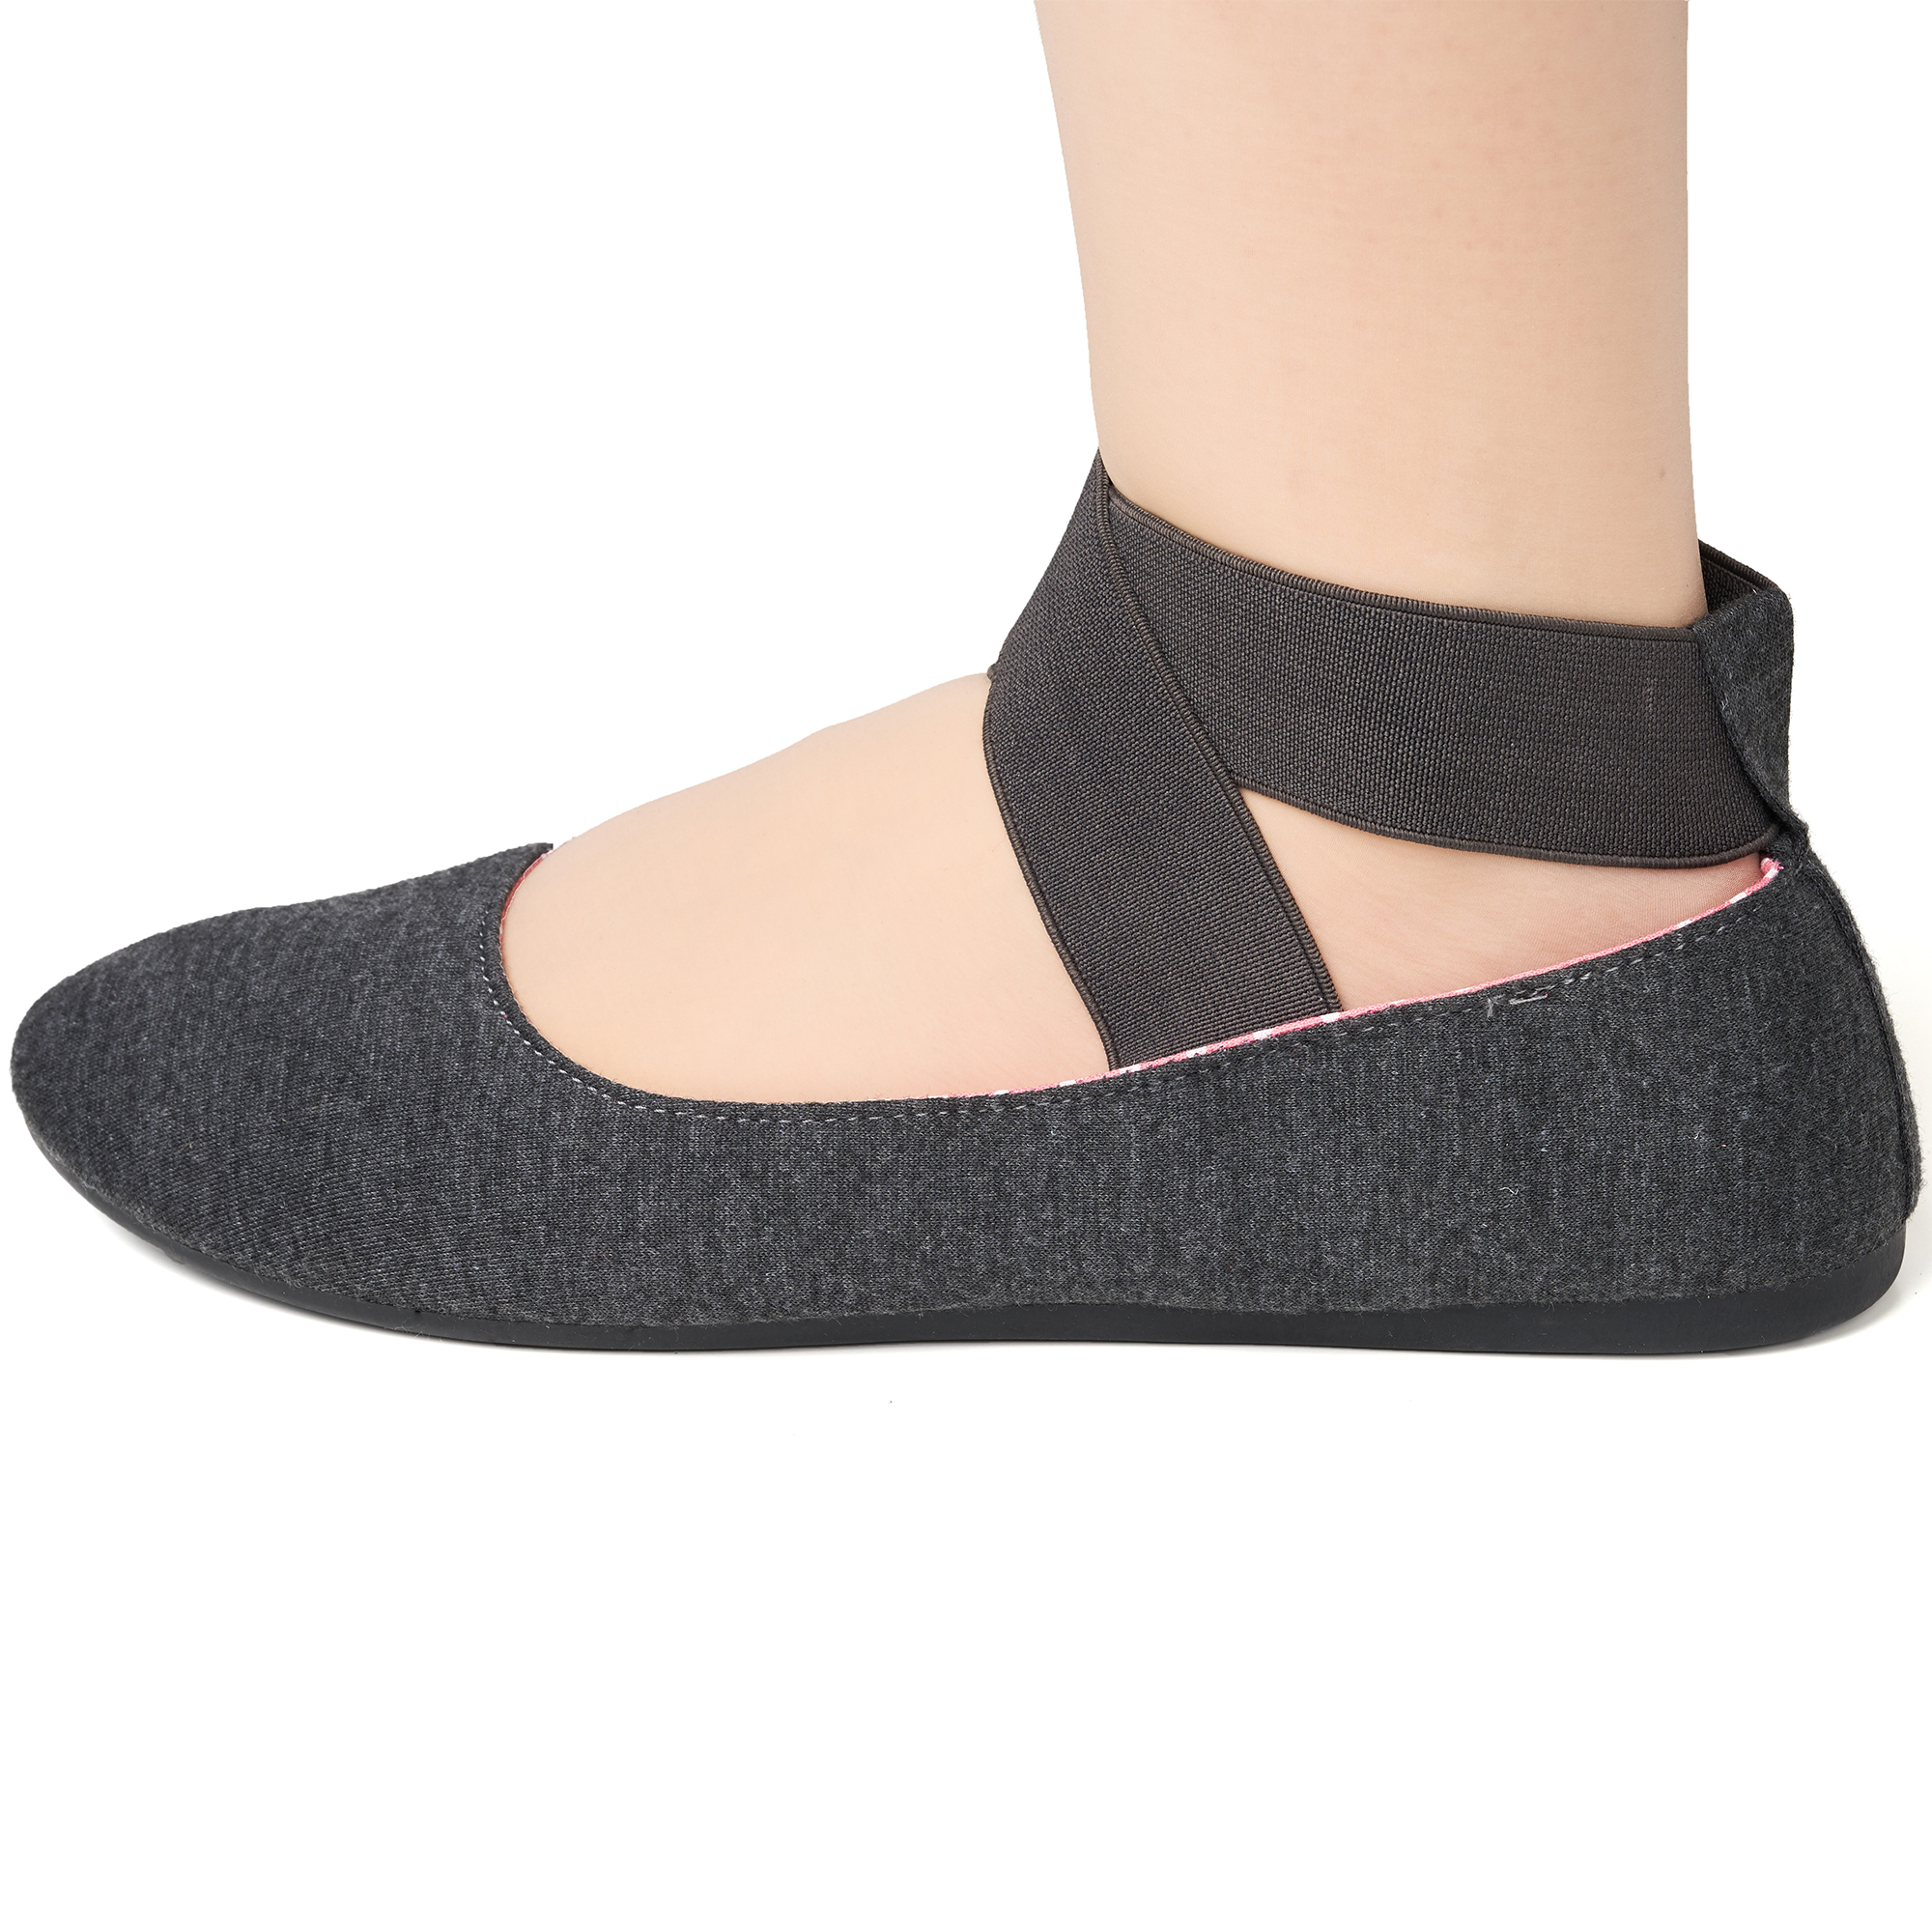 Alpine-Swiss-Peony-Womens-Ballet-Flats-Elastic-Ankle-Strap-Shoes-Slip-On-Loafers thumbnail 32